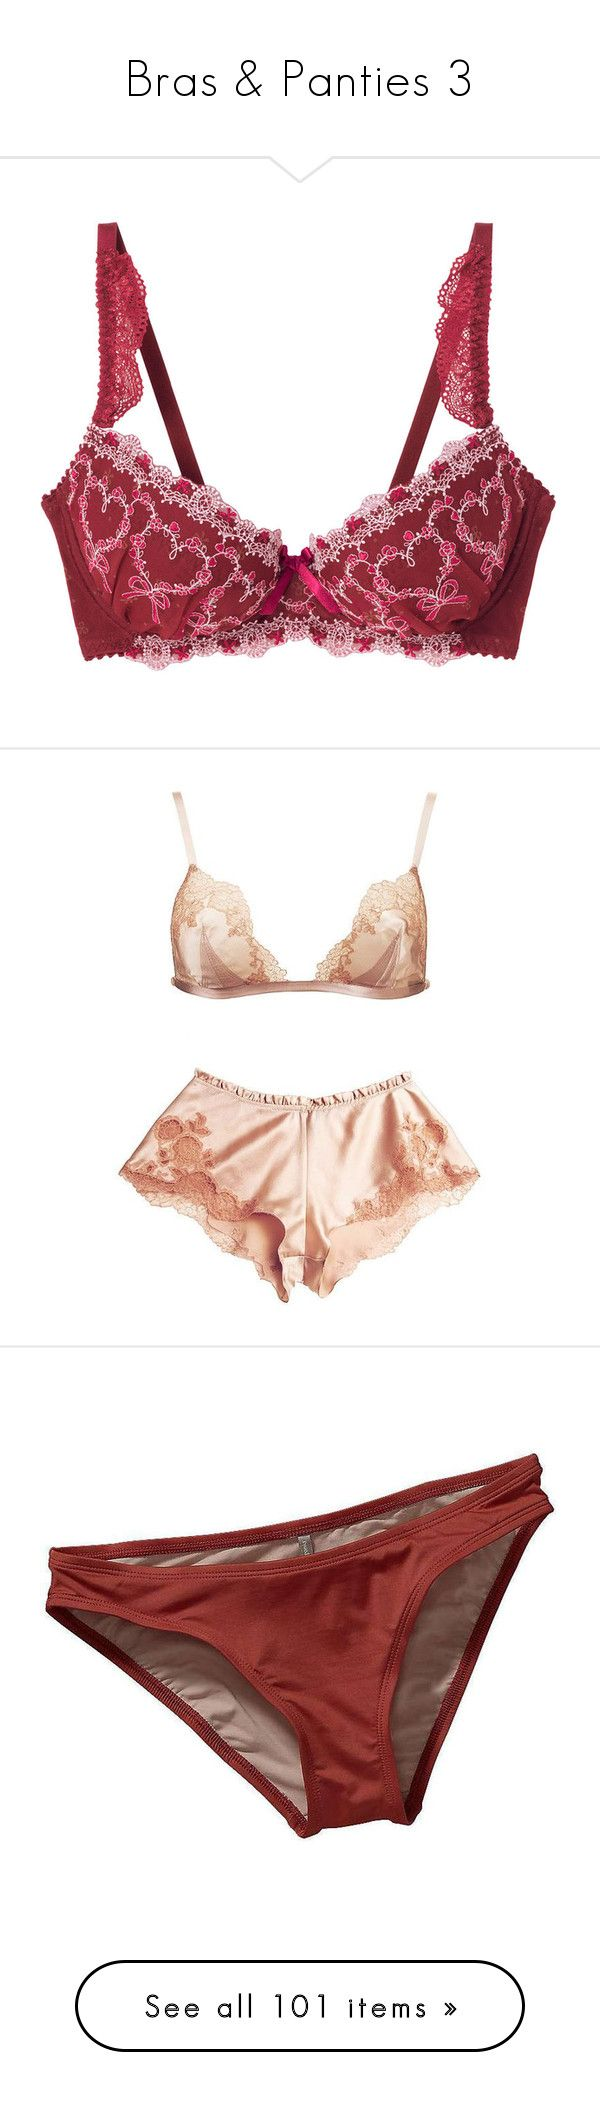 """Bras & Panties 3"" by libbylu116-1 ❤ liked on Polyvore featuring intimates, lingerie, underwear, bras, undies, goth lingerie, gothic lingerie, punk lingerie, red lingerie and retro lingerie"